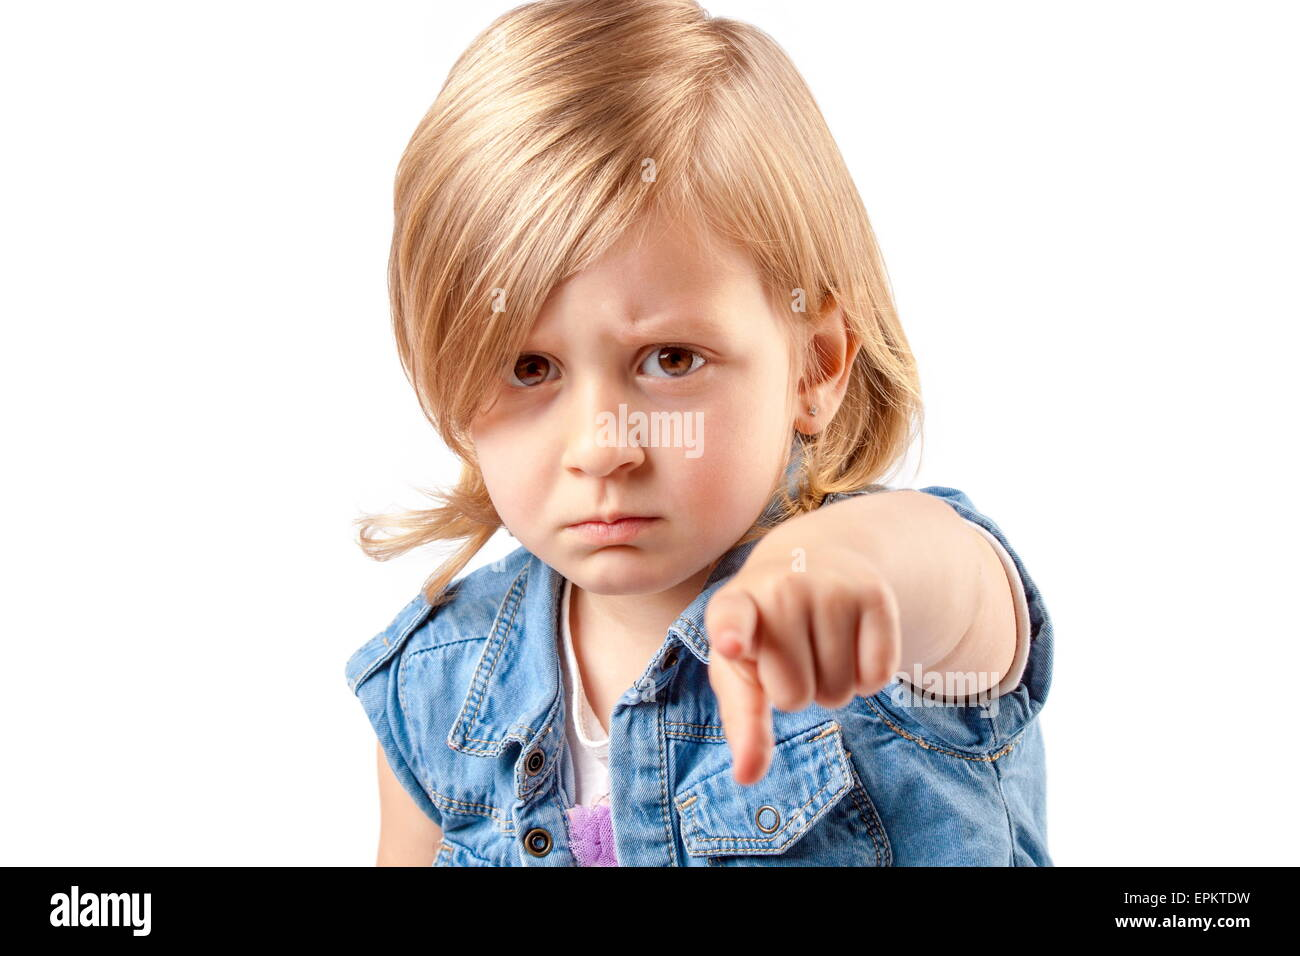 Portrait of a young angry girl pointing up - Stock Image